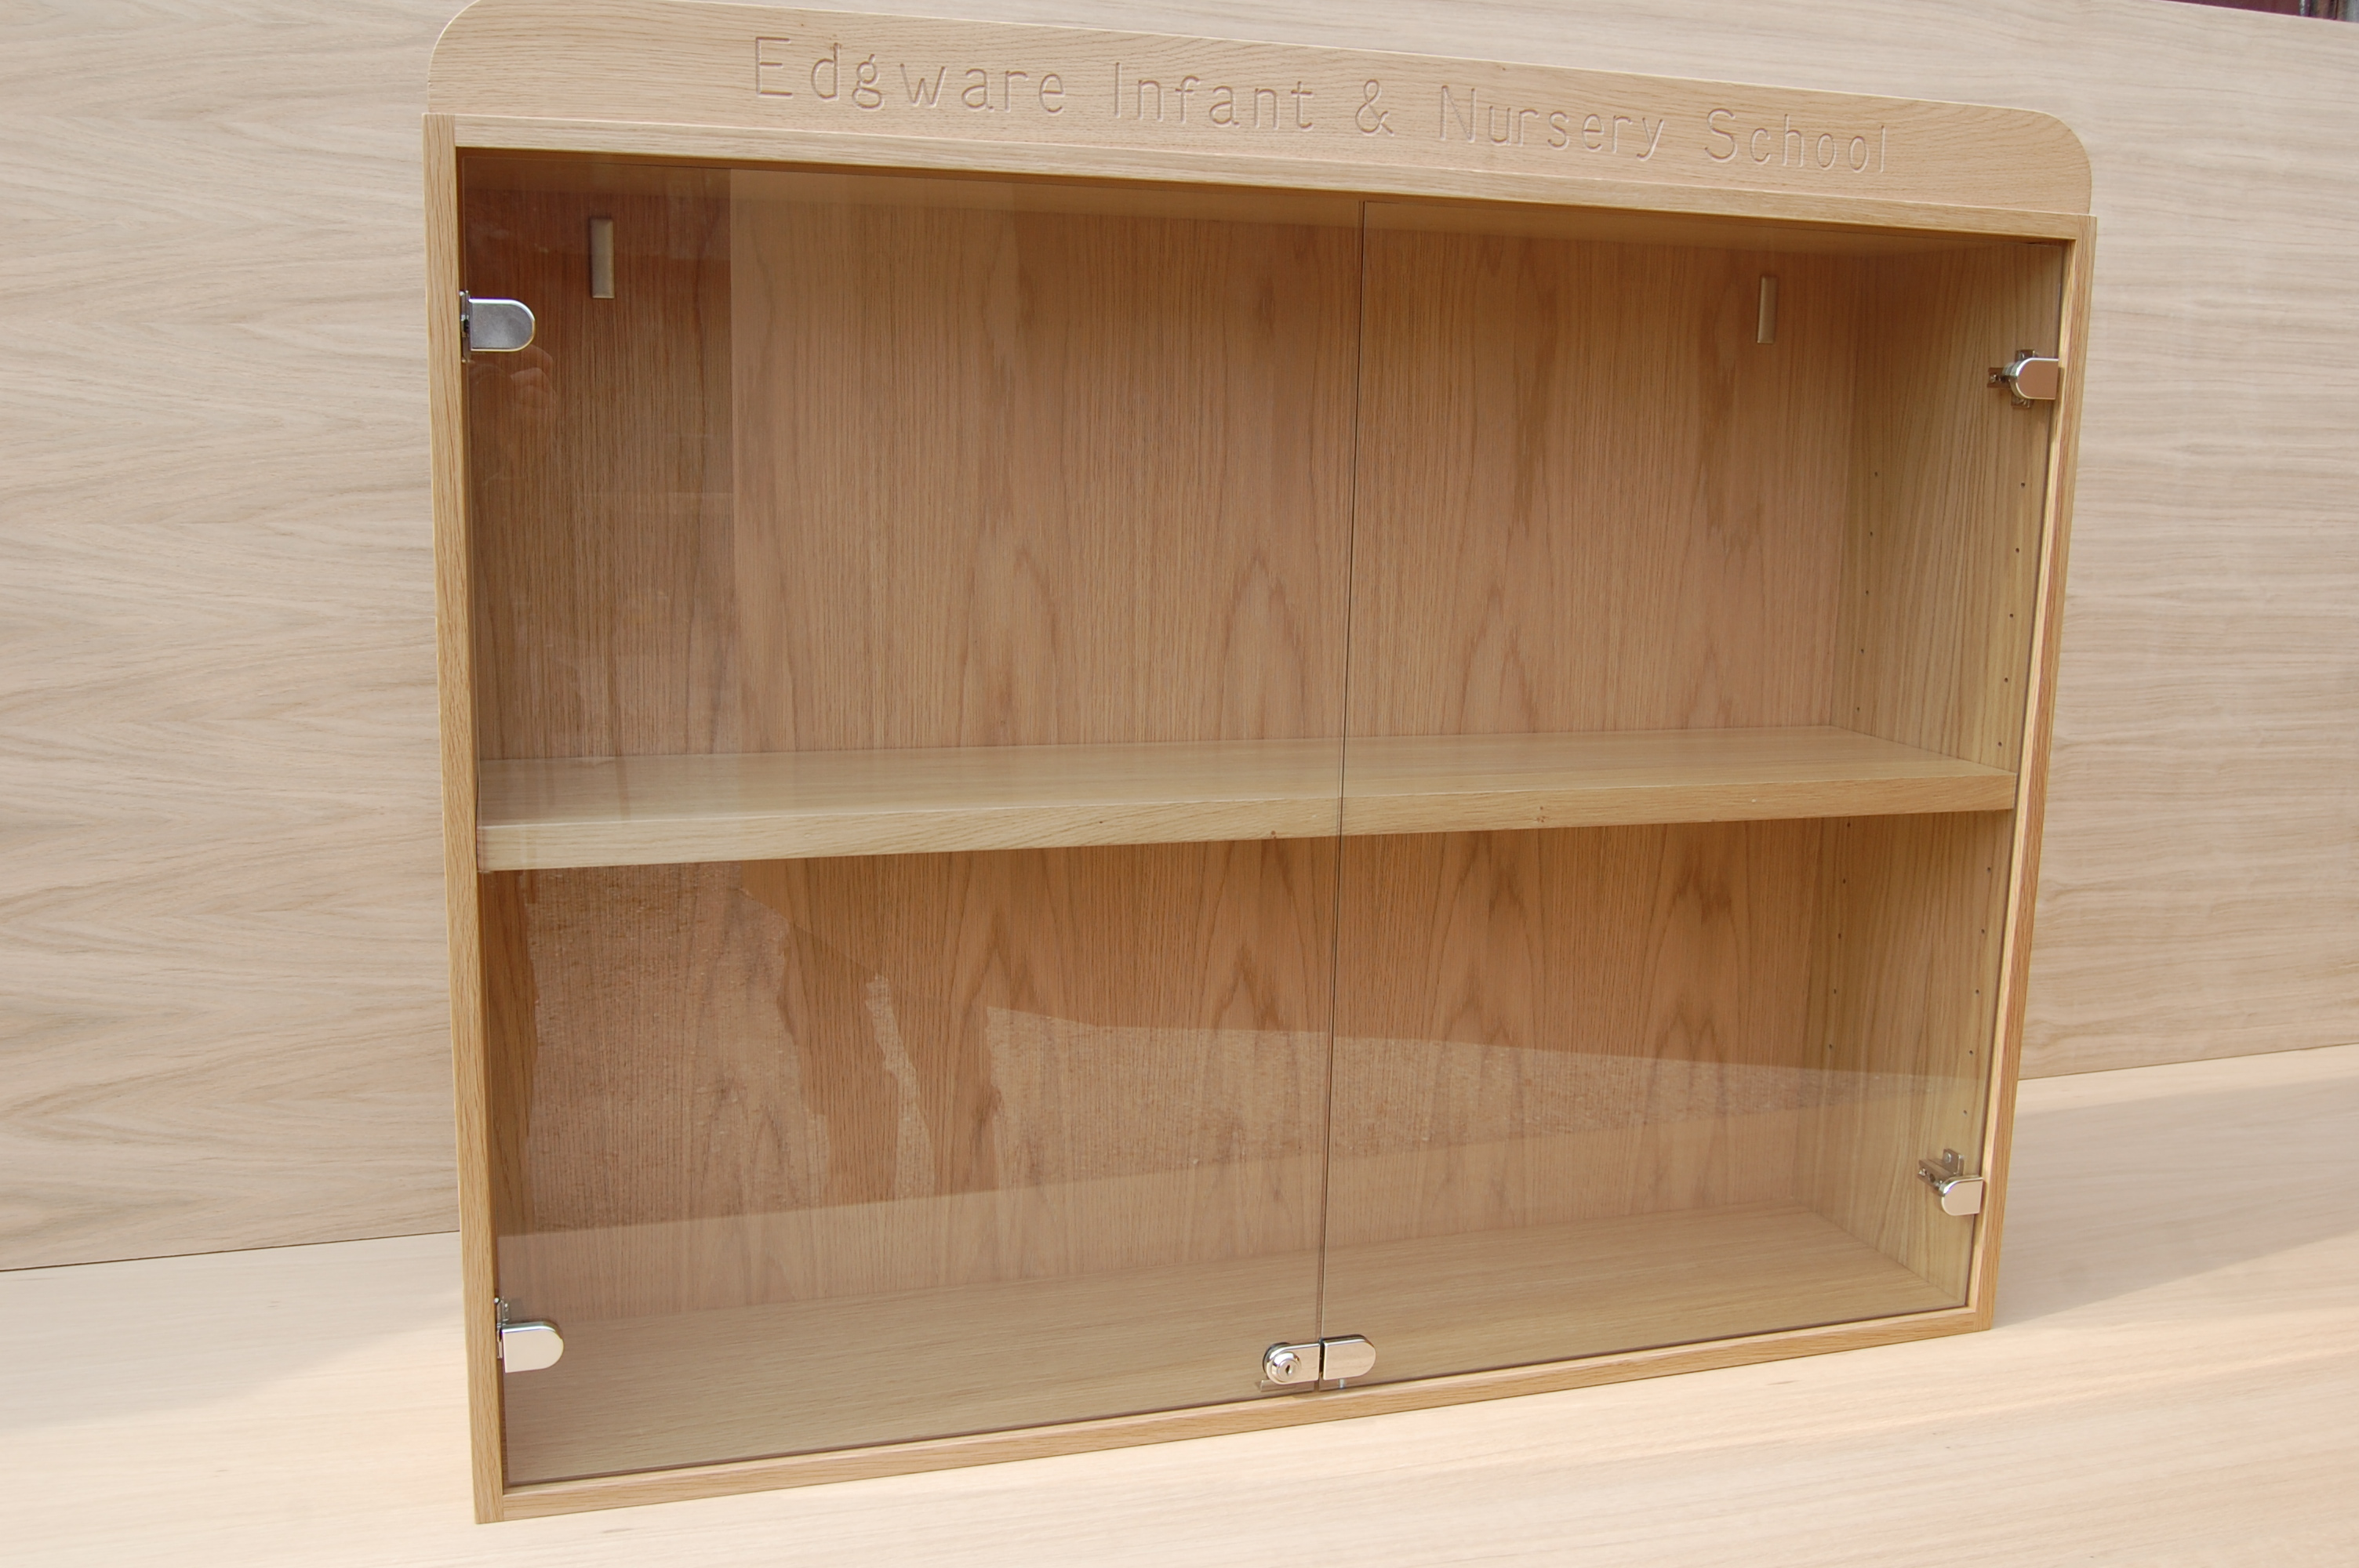 Wallfixed Trophy Cabinet For Schools And Clubs Cabinets Showcases Trophiesandmedals